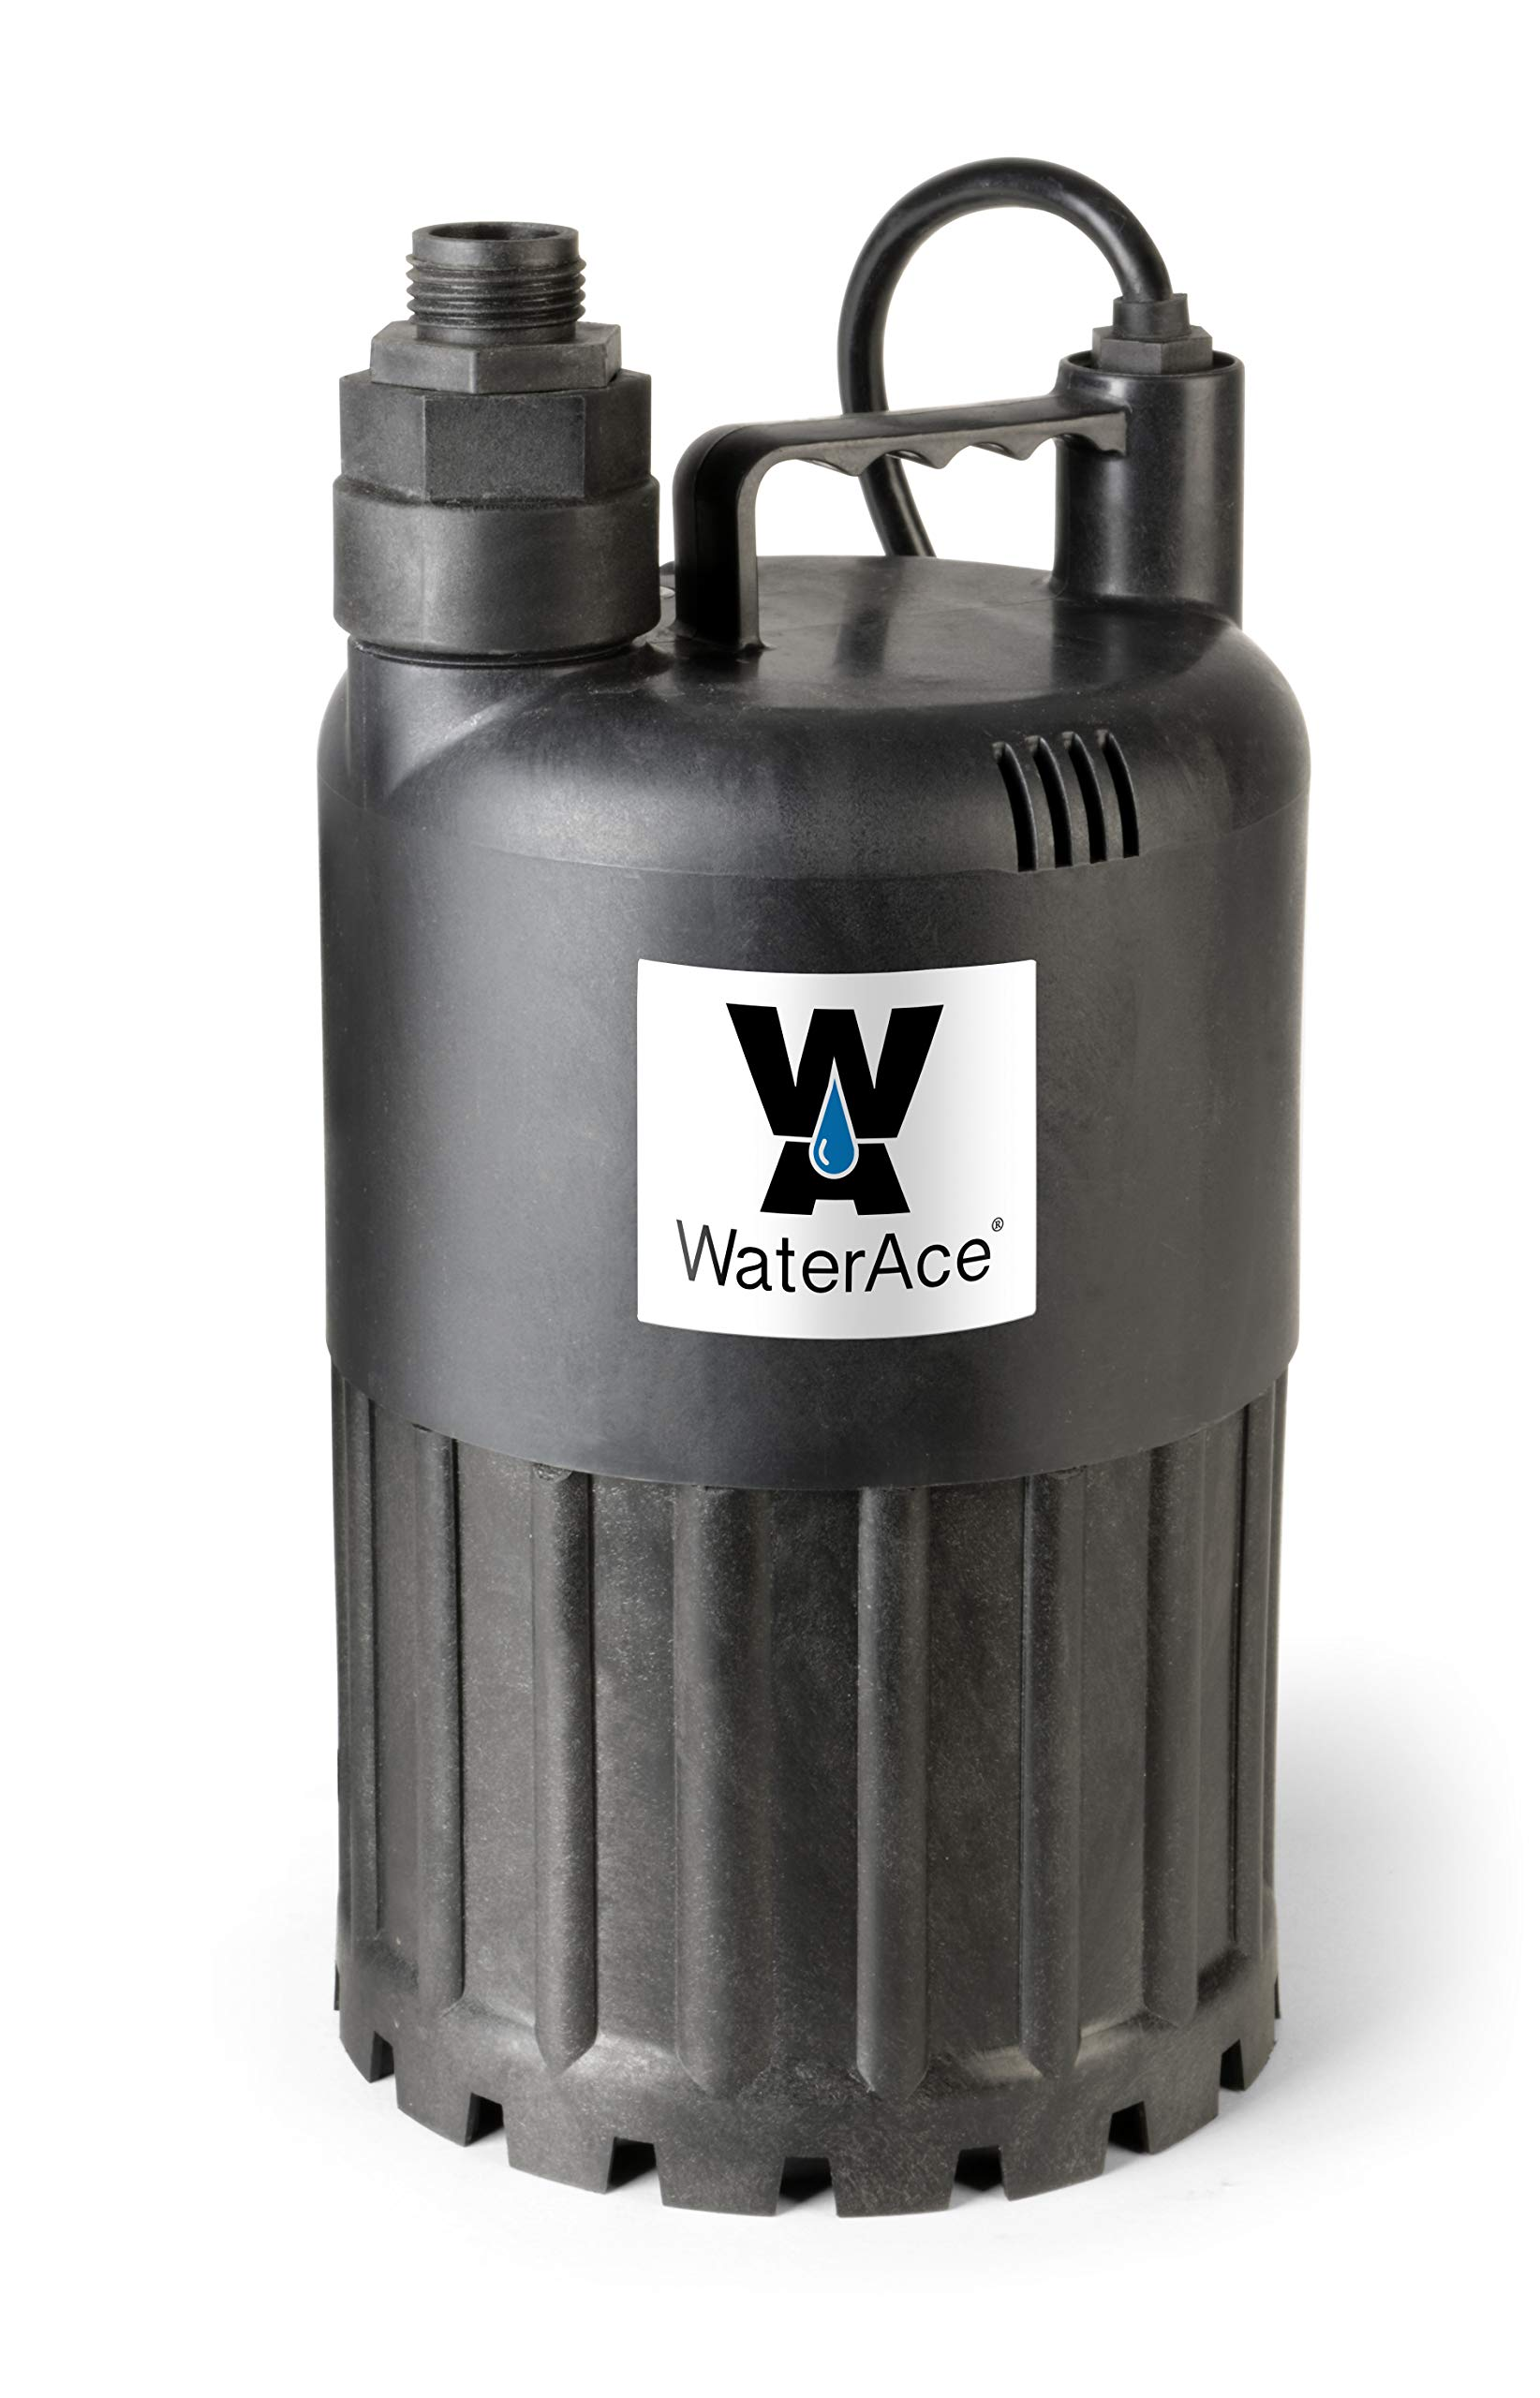 WaterAce WA80UP Submersible Utility Pump, 1/2 HP, Black by WaterAce